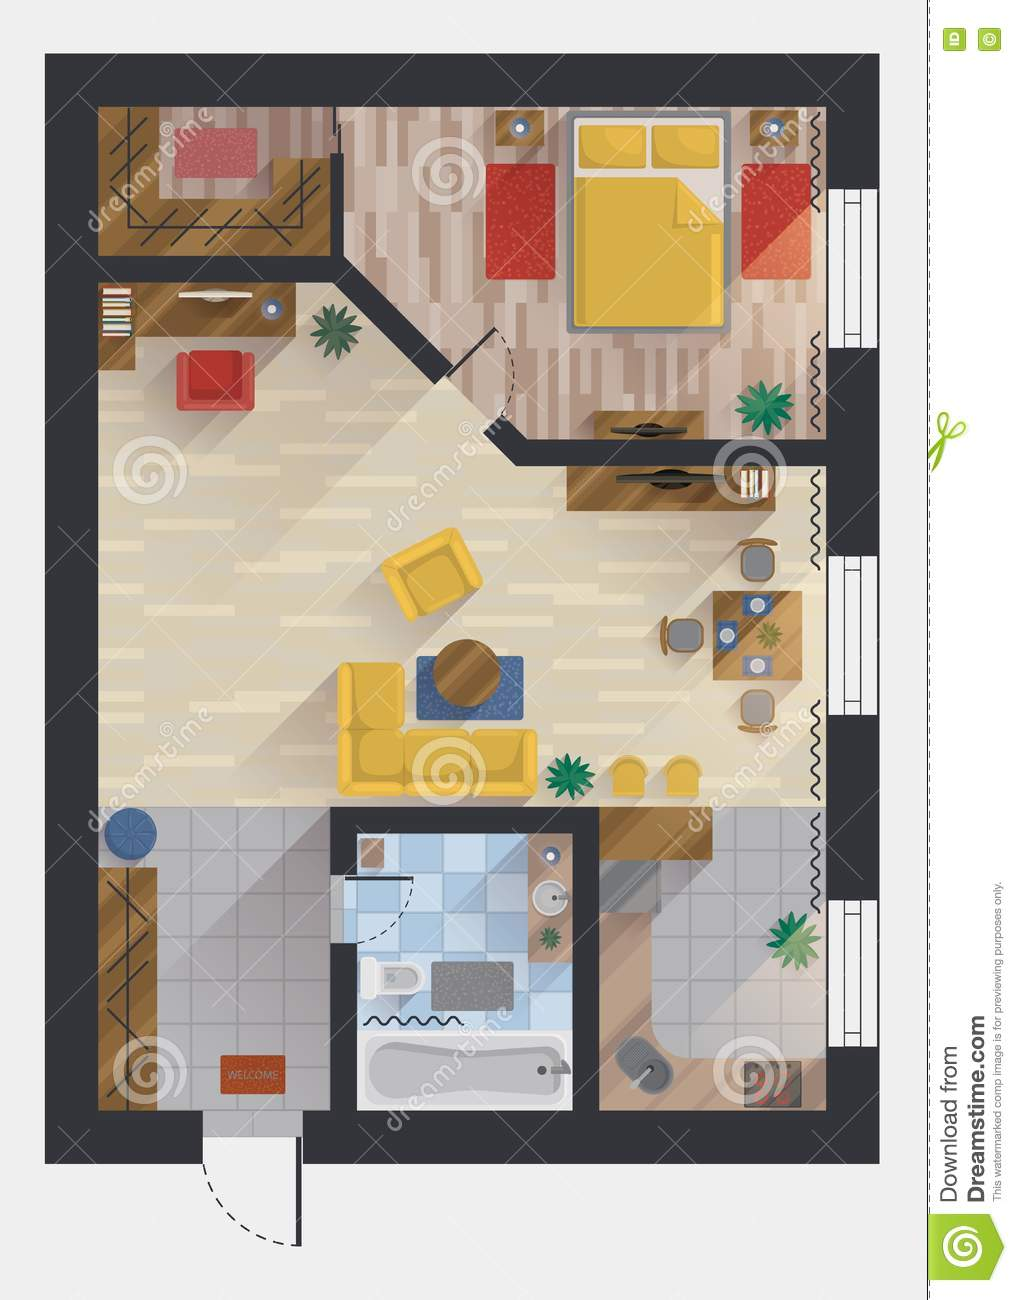 Apartment Or Flat House Floor Plan Top View Stock Vector Image 79304669